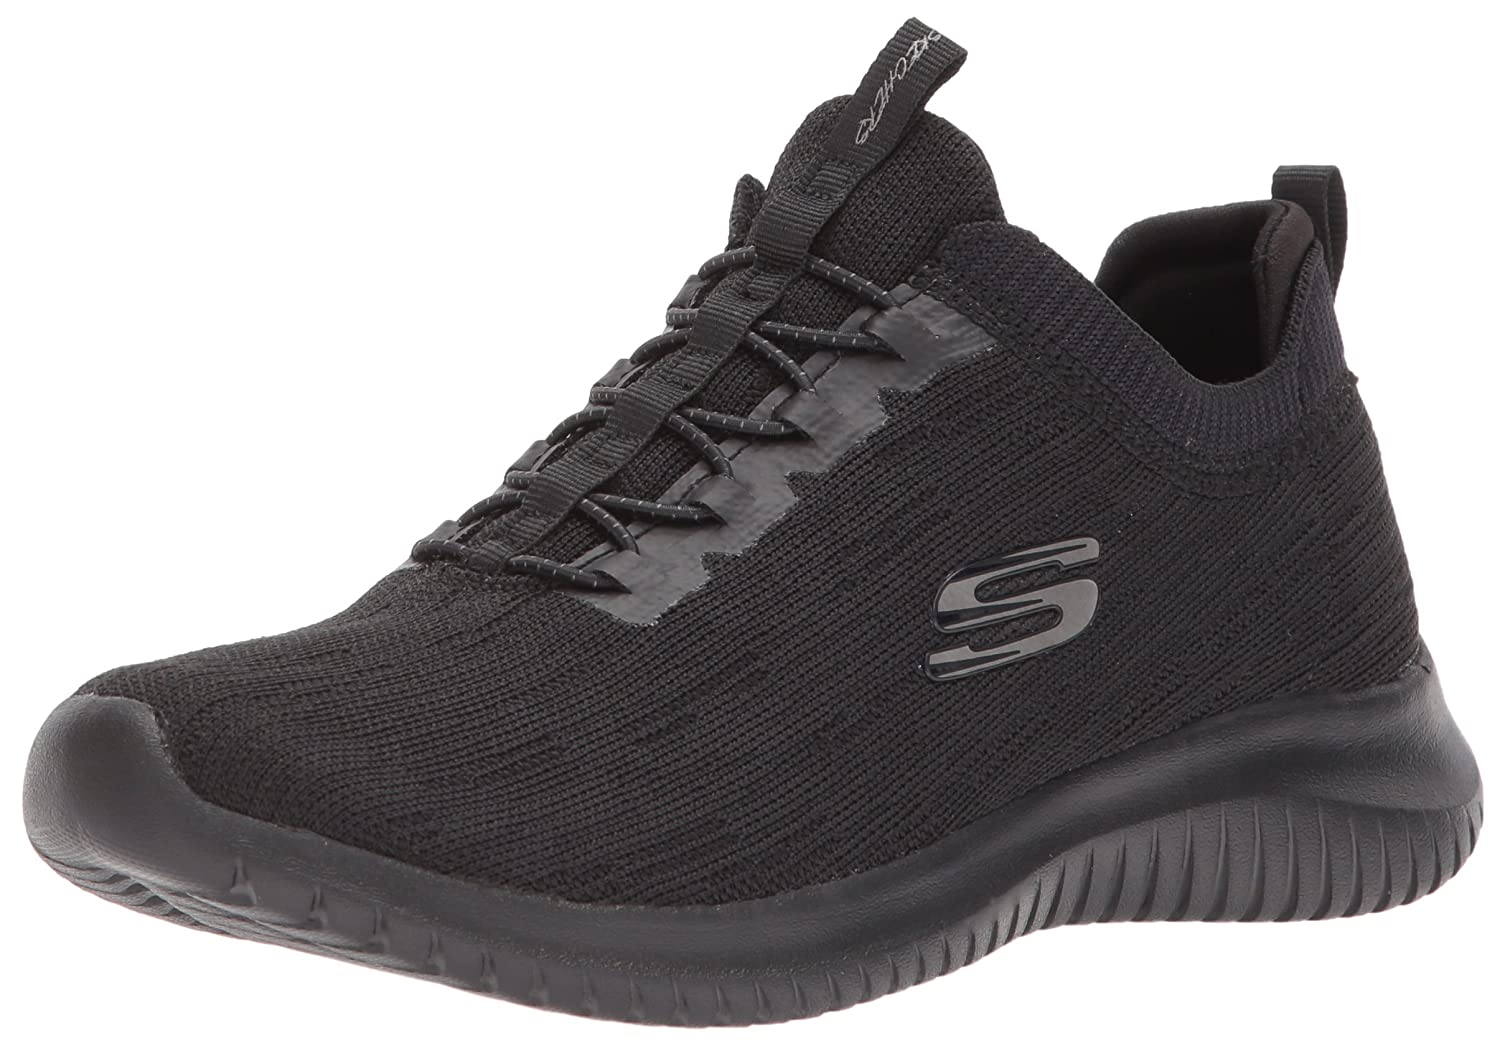 Skechers Women's Ultra Flex Bright Horizon Sneaker B074BZ5DD9 7 B(M) US|Black/Black